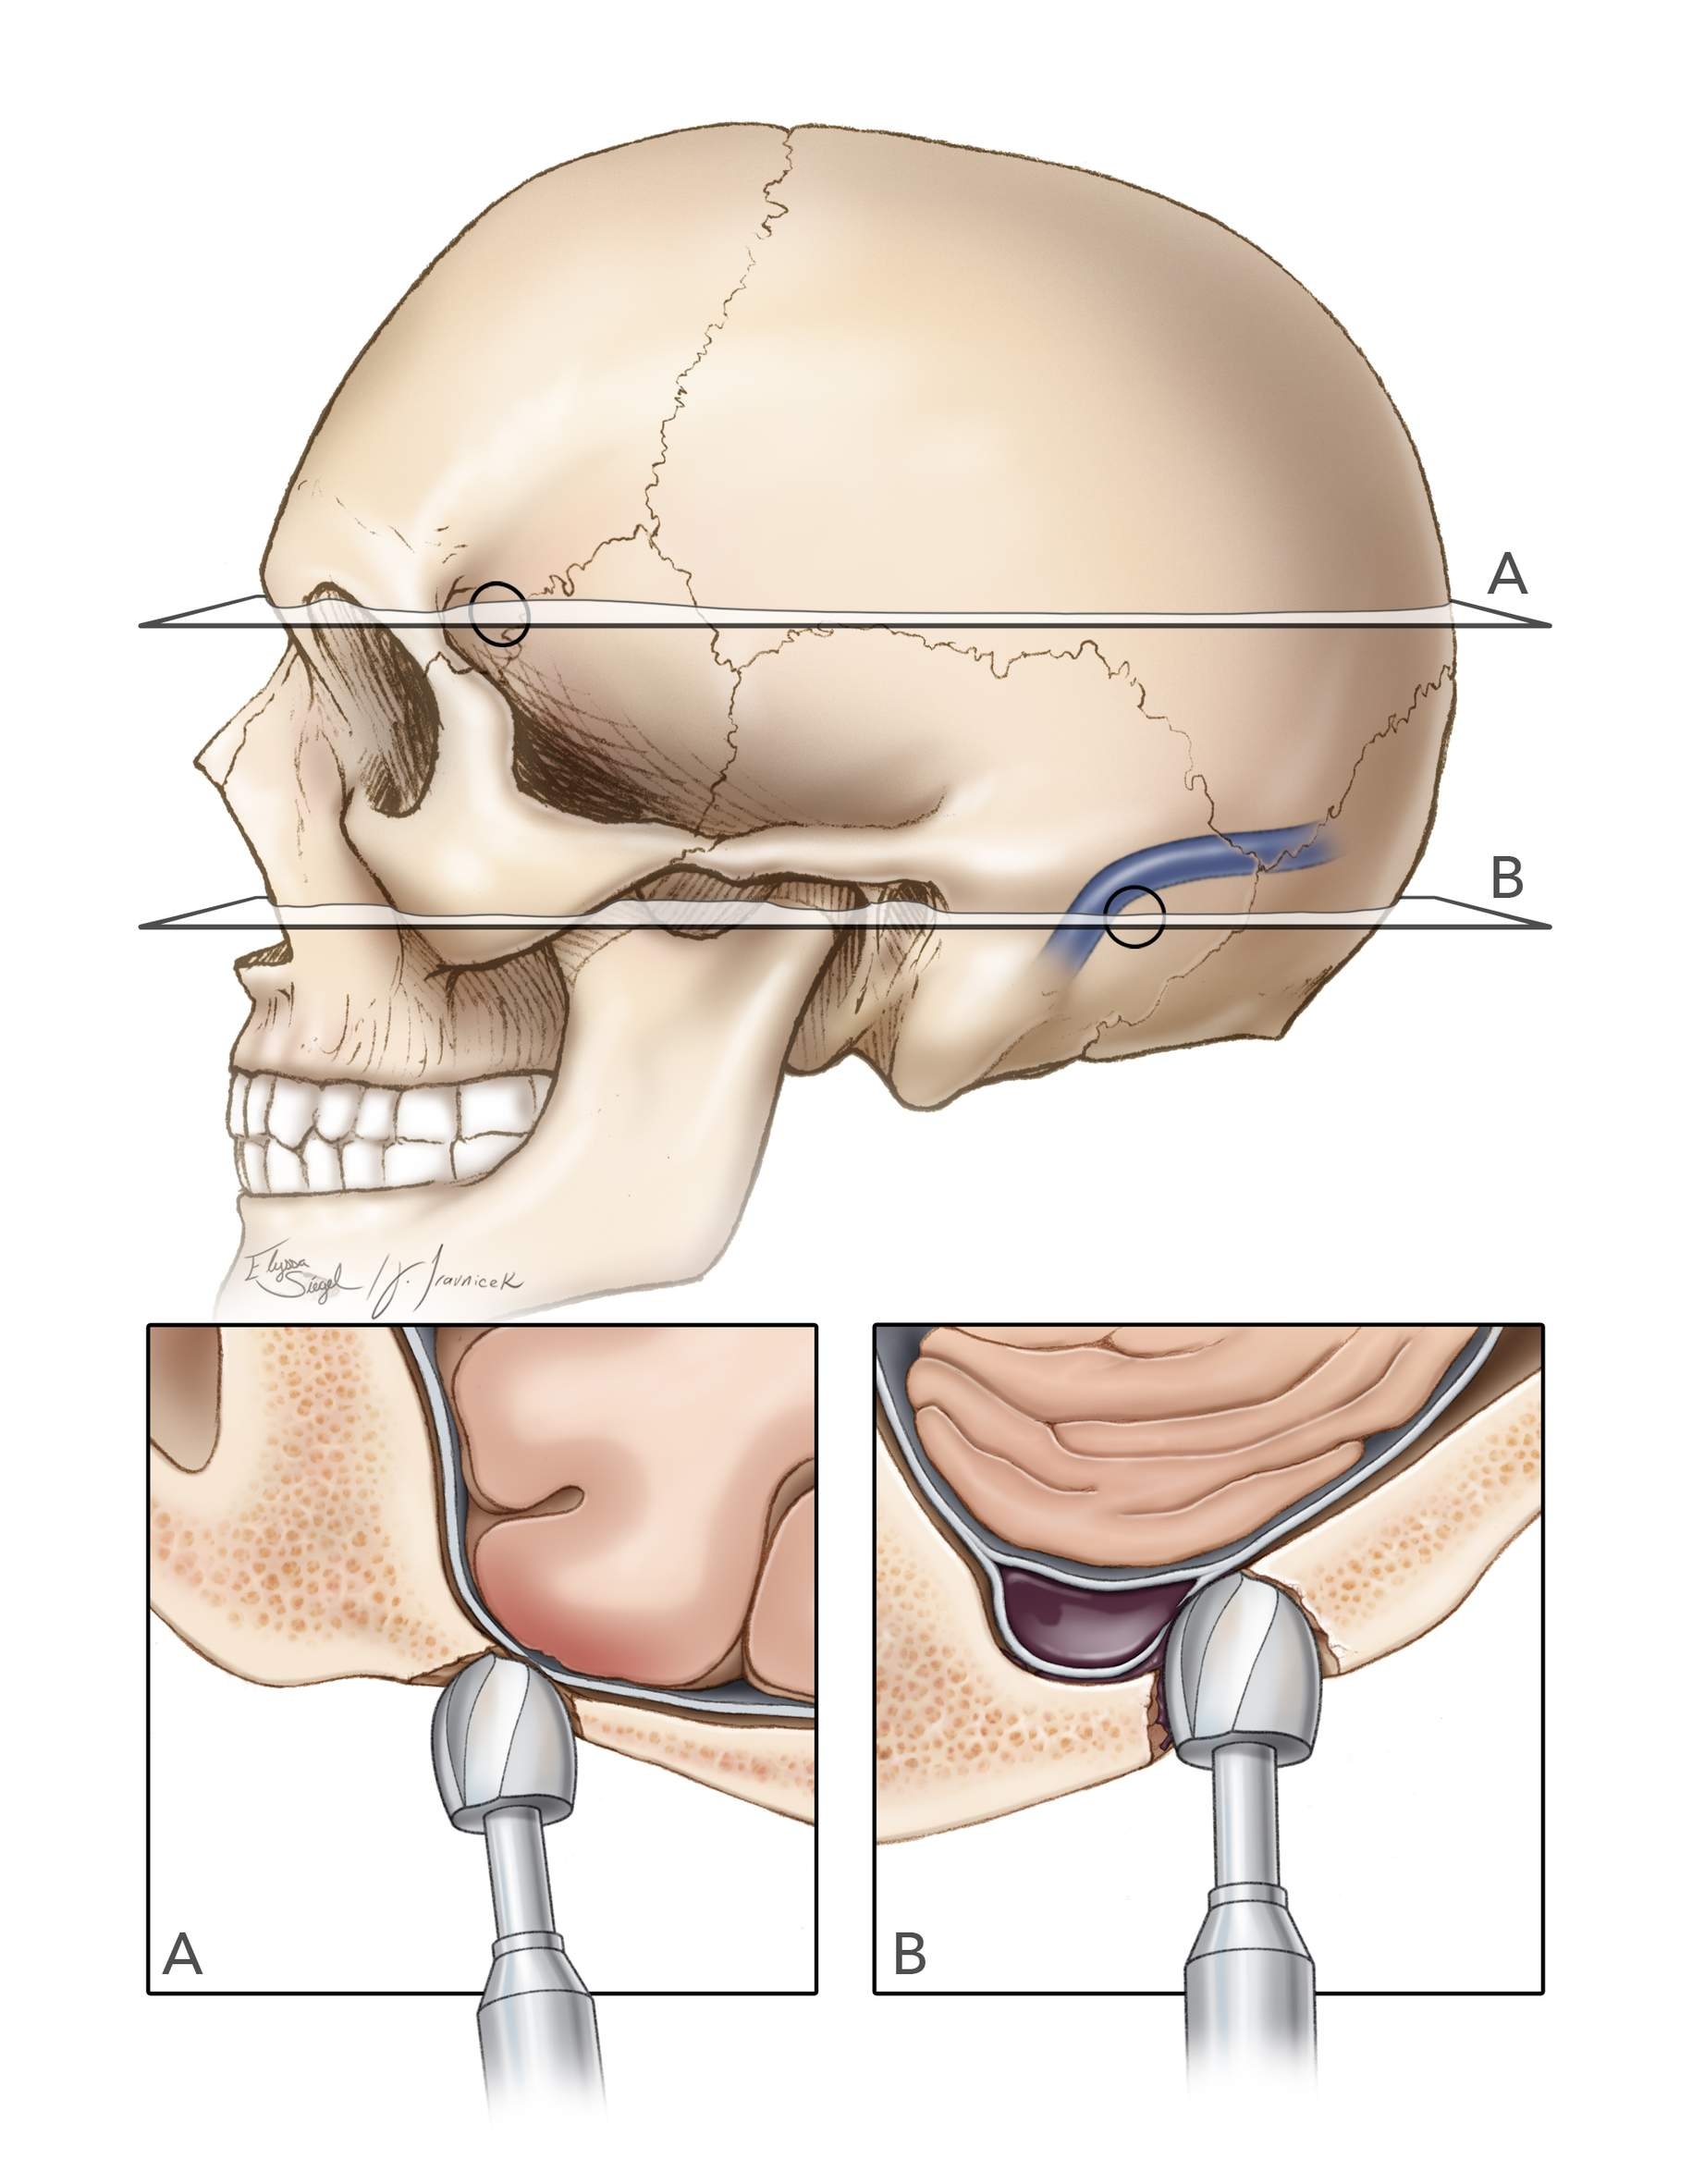 Figure 7: The uneven skull thickness (for example, within the key hole or around the venous sinuses) can be a significant cause of cortical, dural and venous sinus injury because the cutting burrs along the equator of the acorn bit can reach the dura covered by the thinner temporal section of the skull or the wall of the sinus while the tip of the drill is still working on the adjacent thicker frontal or occipital bone within the burr hole, respectively.  This event is especially problematic when the surgeon is making burr holes over the dural sinuses for parasagittal and retromastoid craniotomies. Because the walls of the dural sinuses embed themselves within the inner table, the cutting burrs on the side of the drill bit can injure the sinus wall while the drill tip works on the thicker bone covering the sidewalls of the sinus.